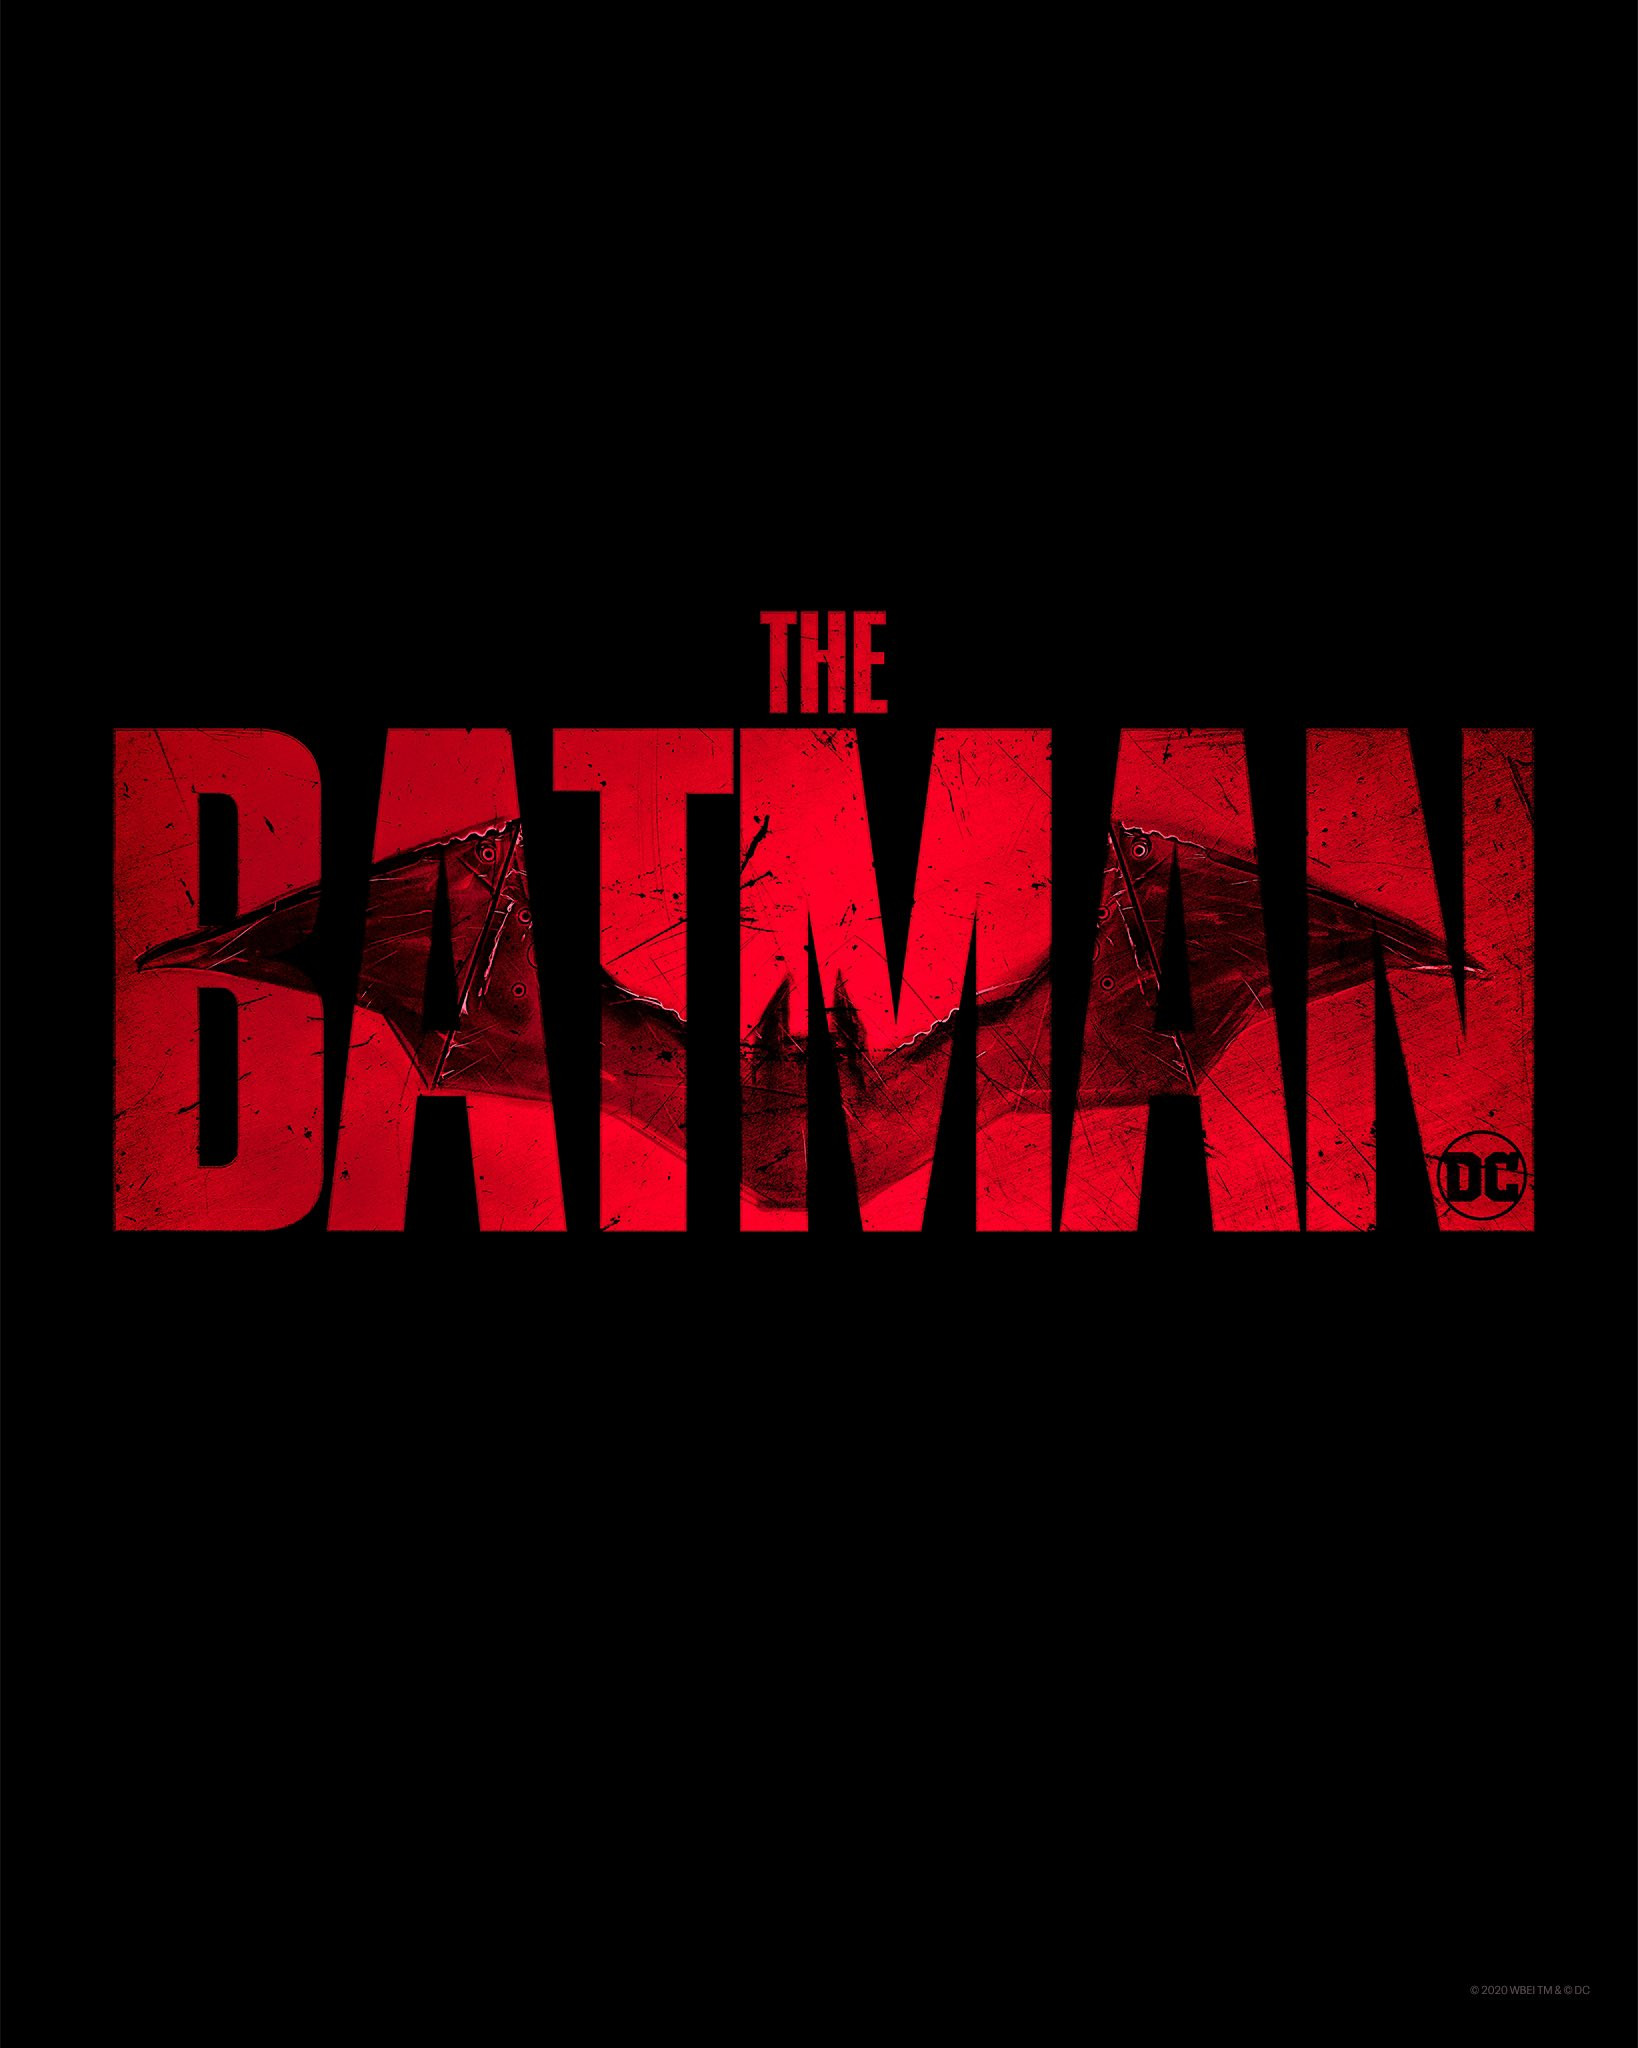 The Batman poster logo